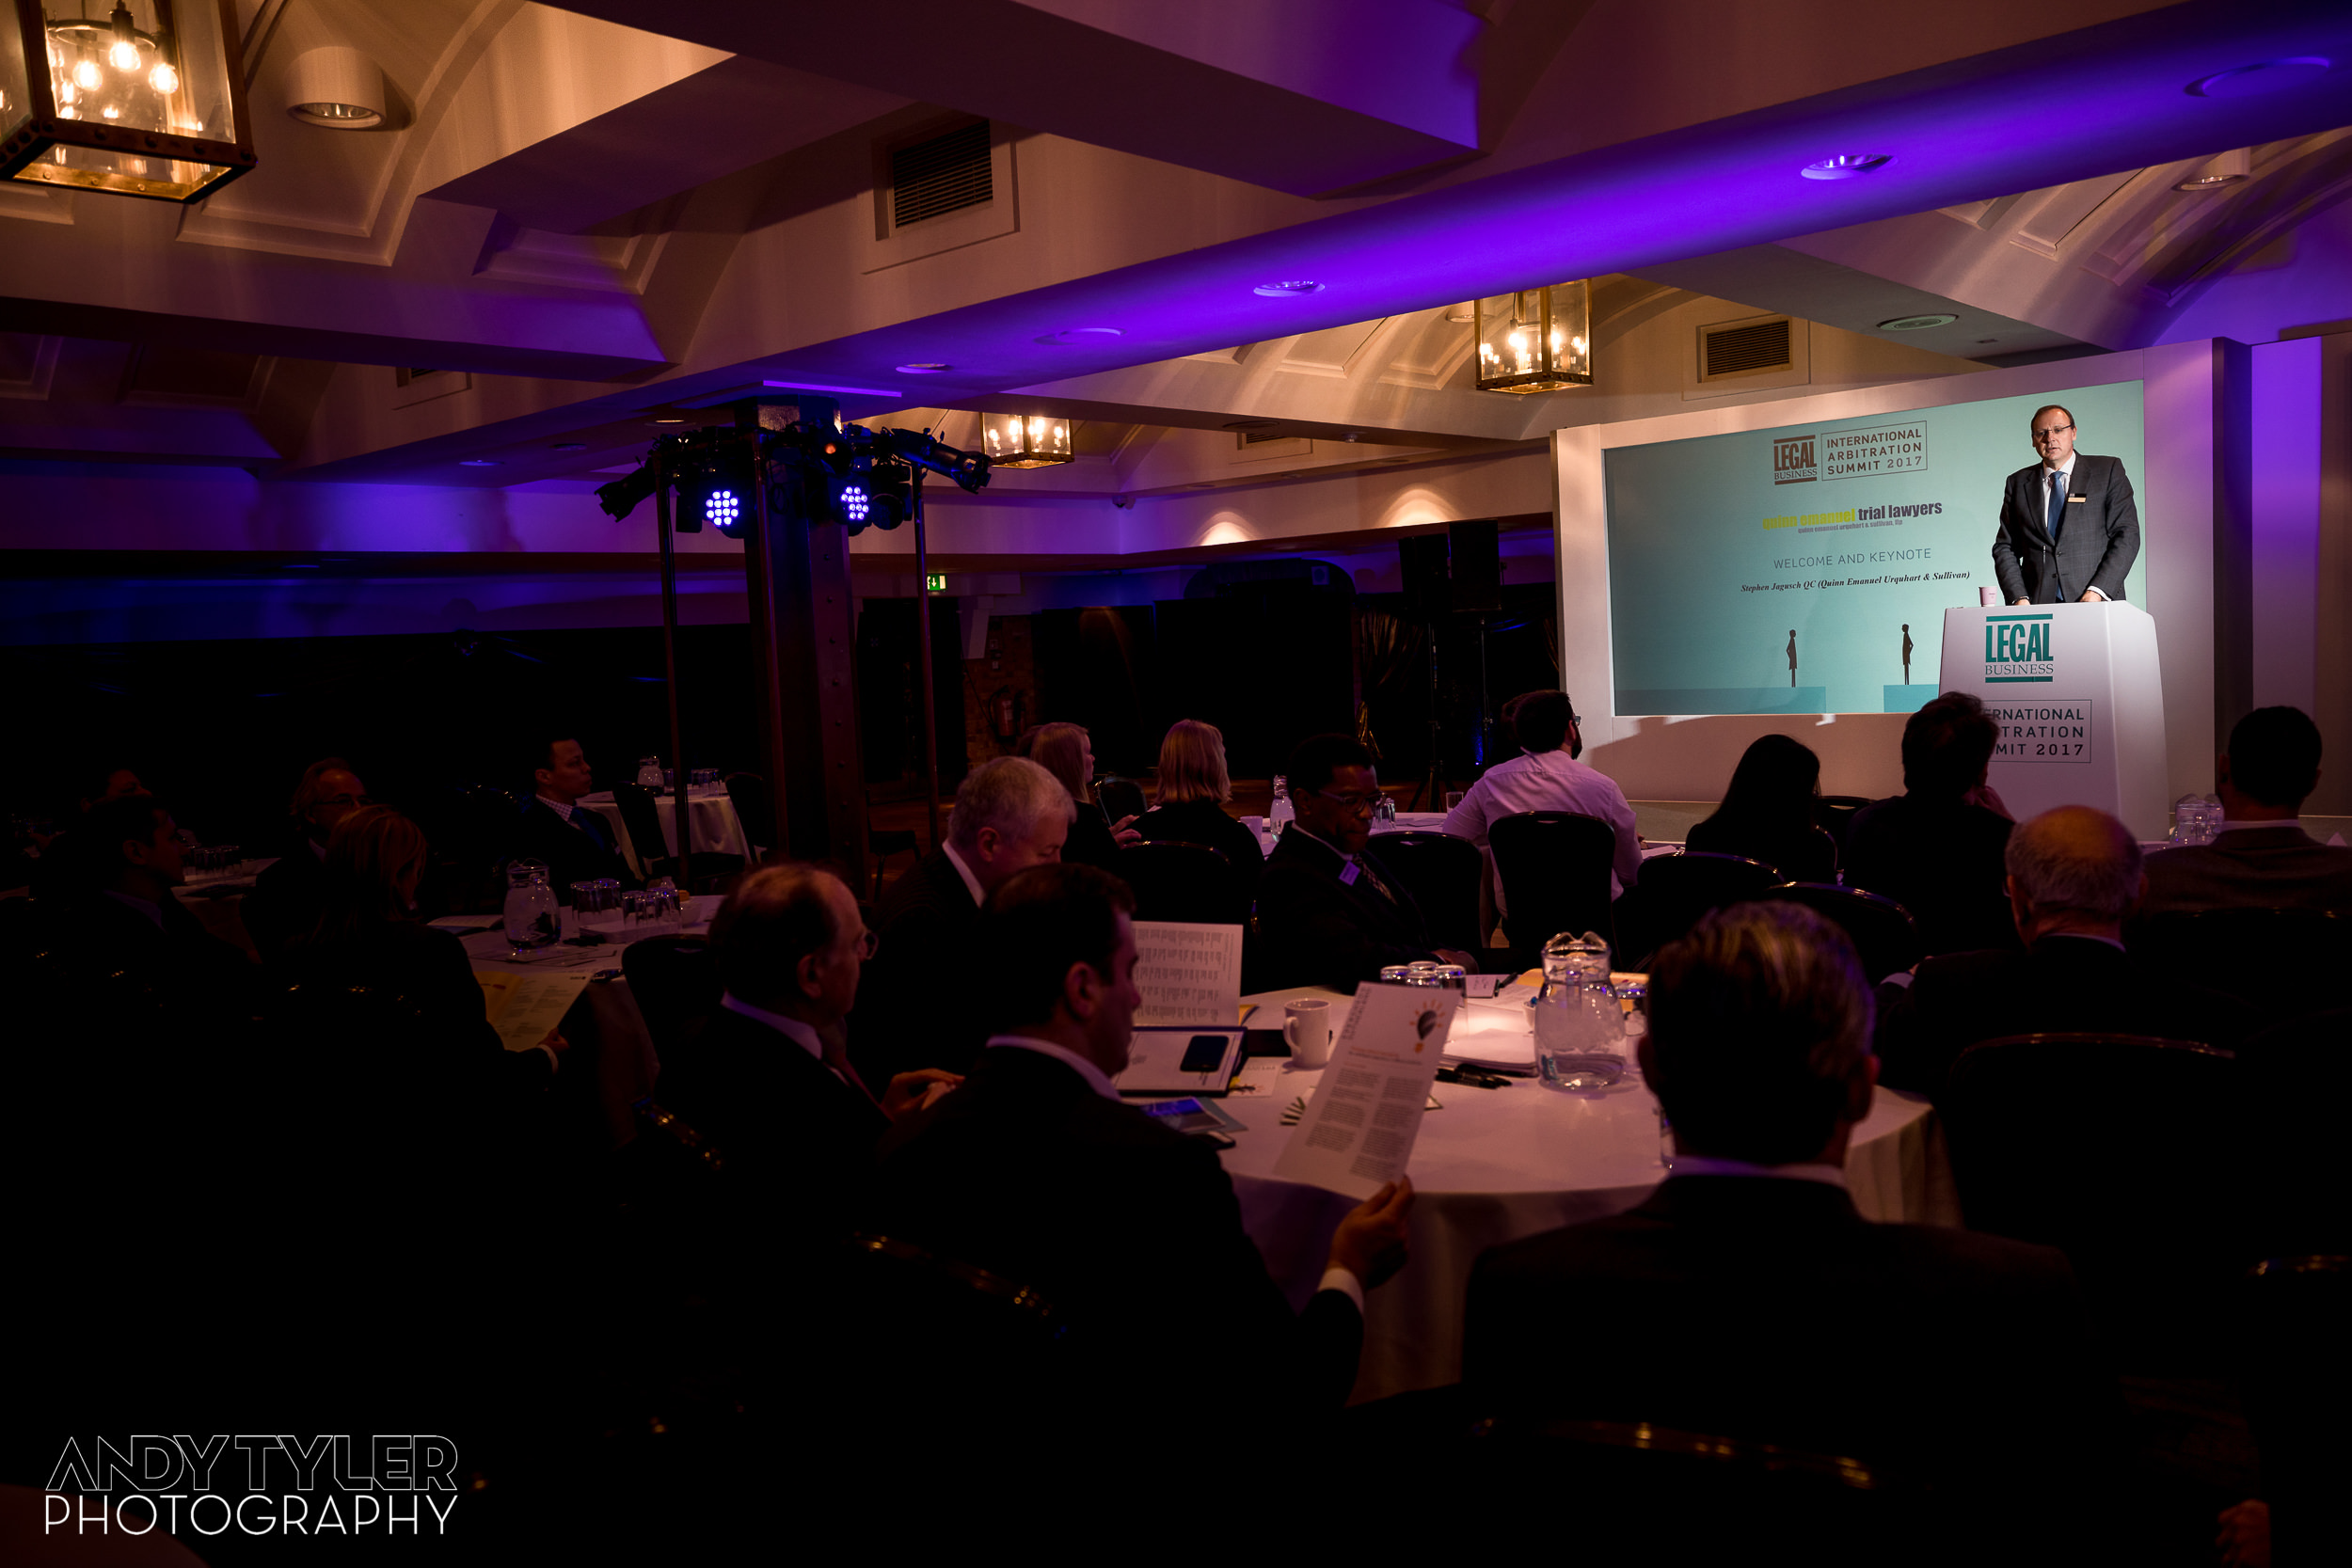 Andy_Tyler_Photography_Business_Conference_006_Andy_Tyler_Photography_075_5DB_0141.jpg